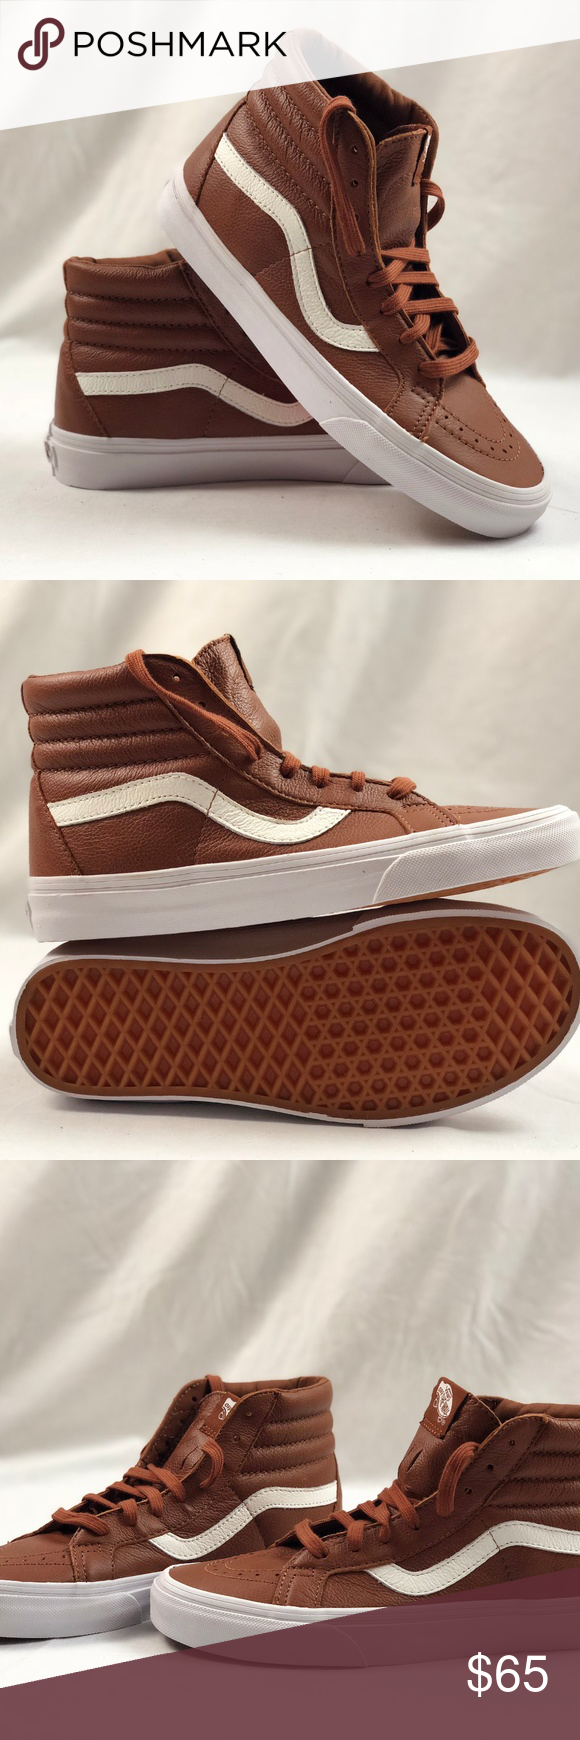 116d19834a9467 Vans SK8 Hi Reissue Premium Leather Tortoise Shell Vans SK8 Hi Reissue  Premium Leather Tortoise Shell. Condition  New with box. Size  Women s 8